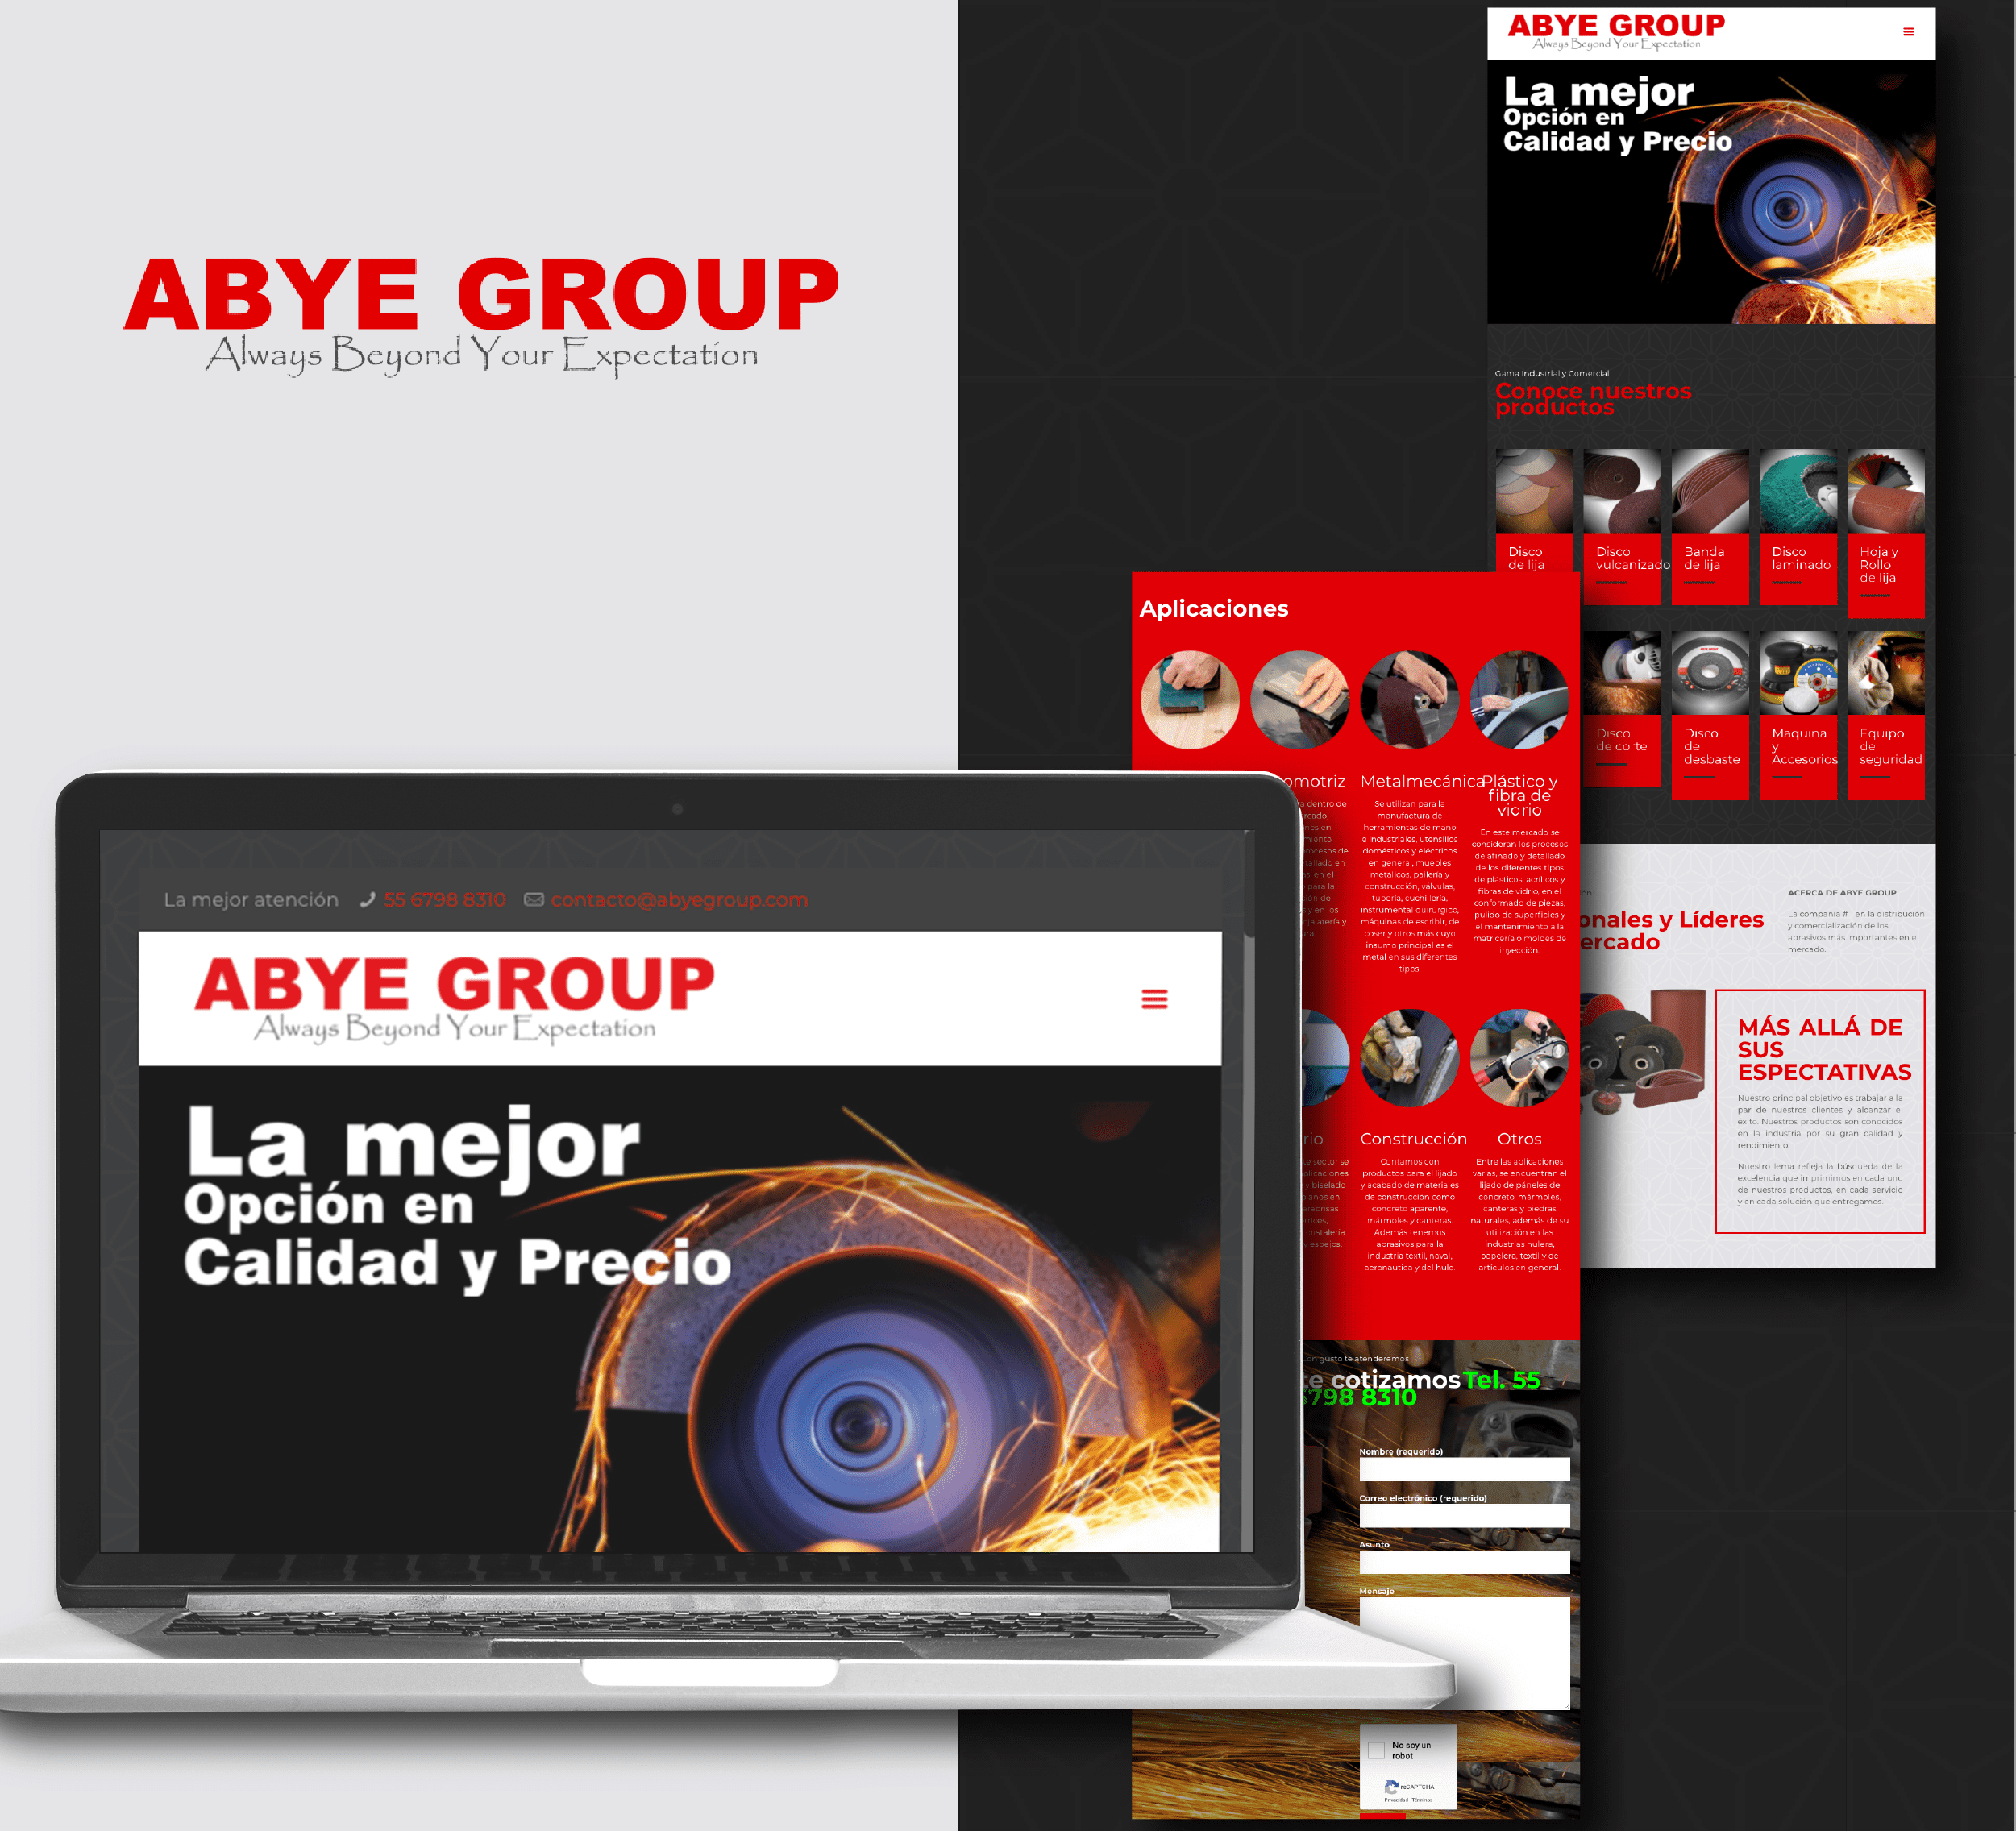 ABYE GROUP